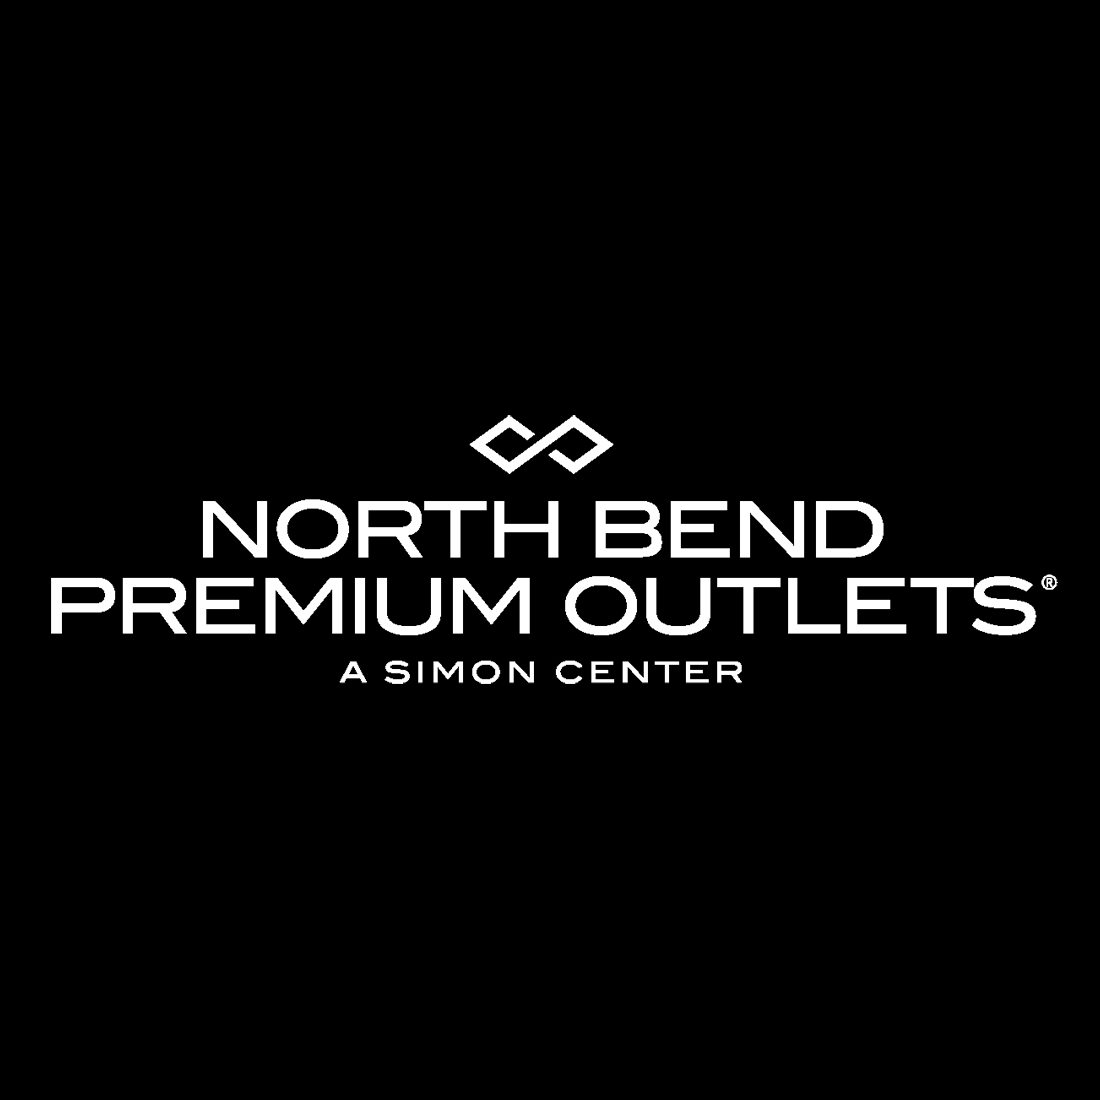 North Bend Premium Outlets image 8